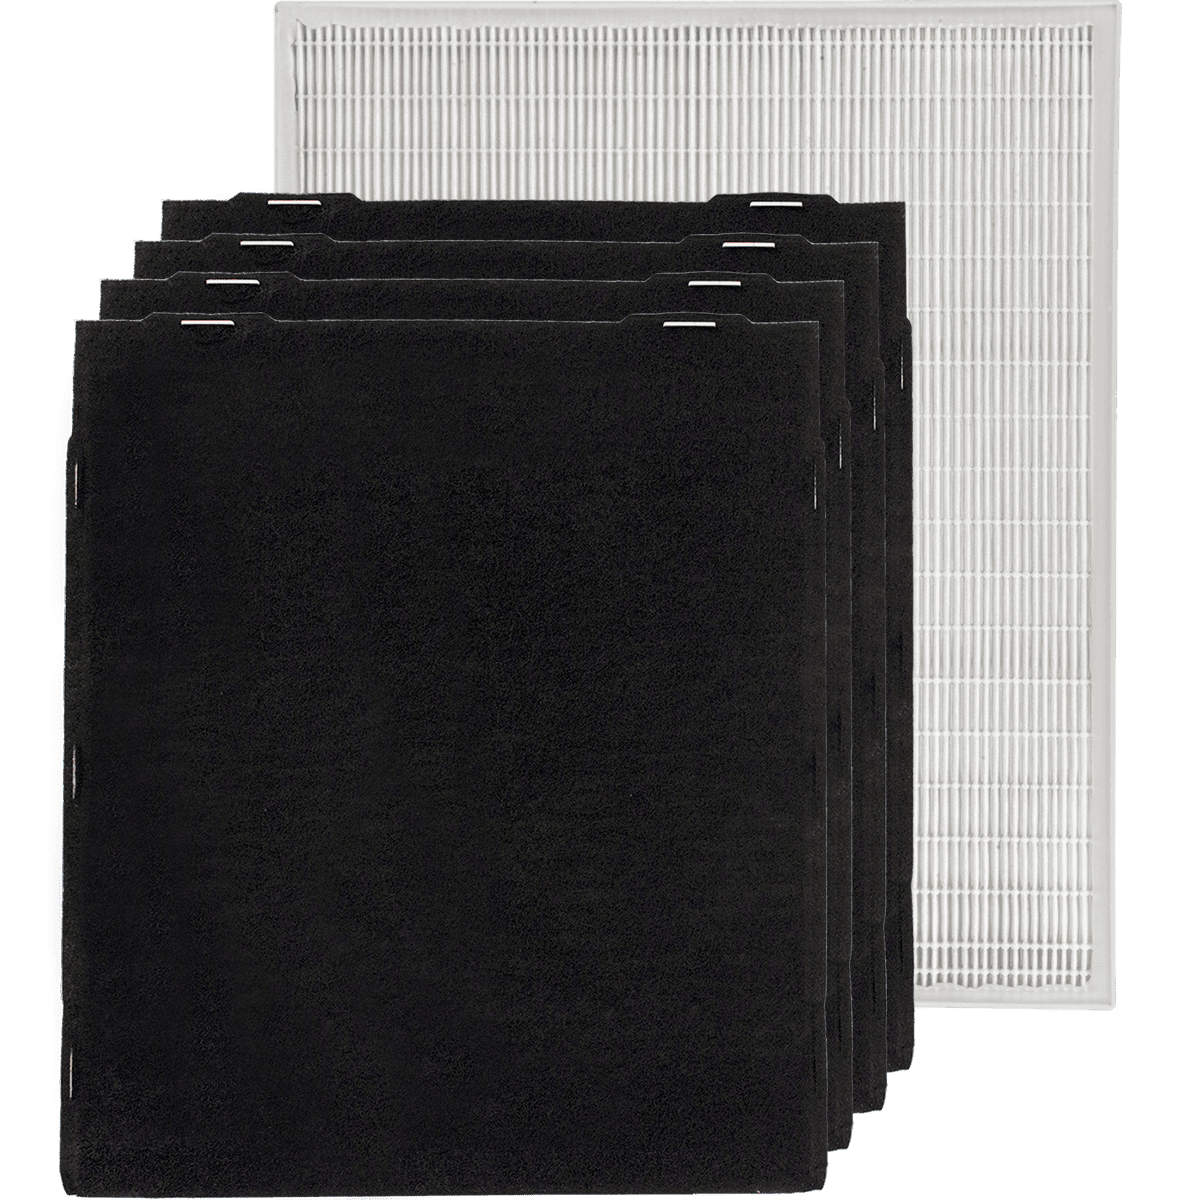 Filter-Monster Replacement Filter Kit for Whirlpool 450, 451, & 510 Air Purifiers wh6375k